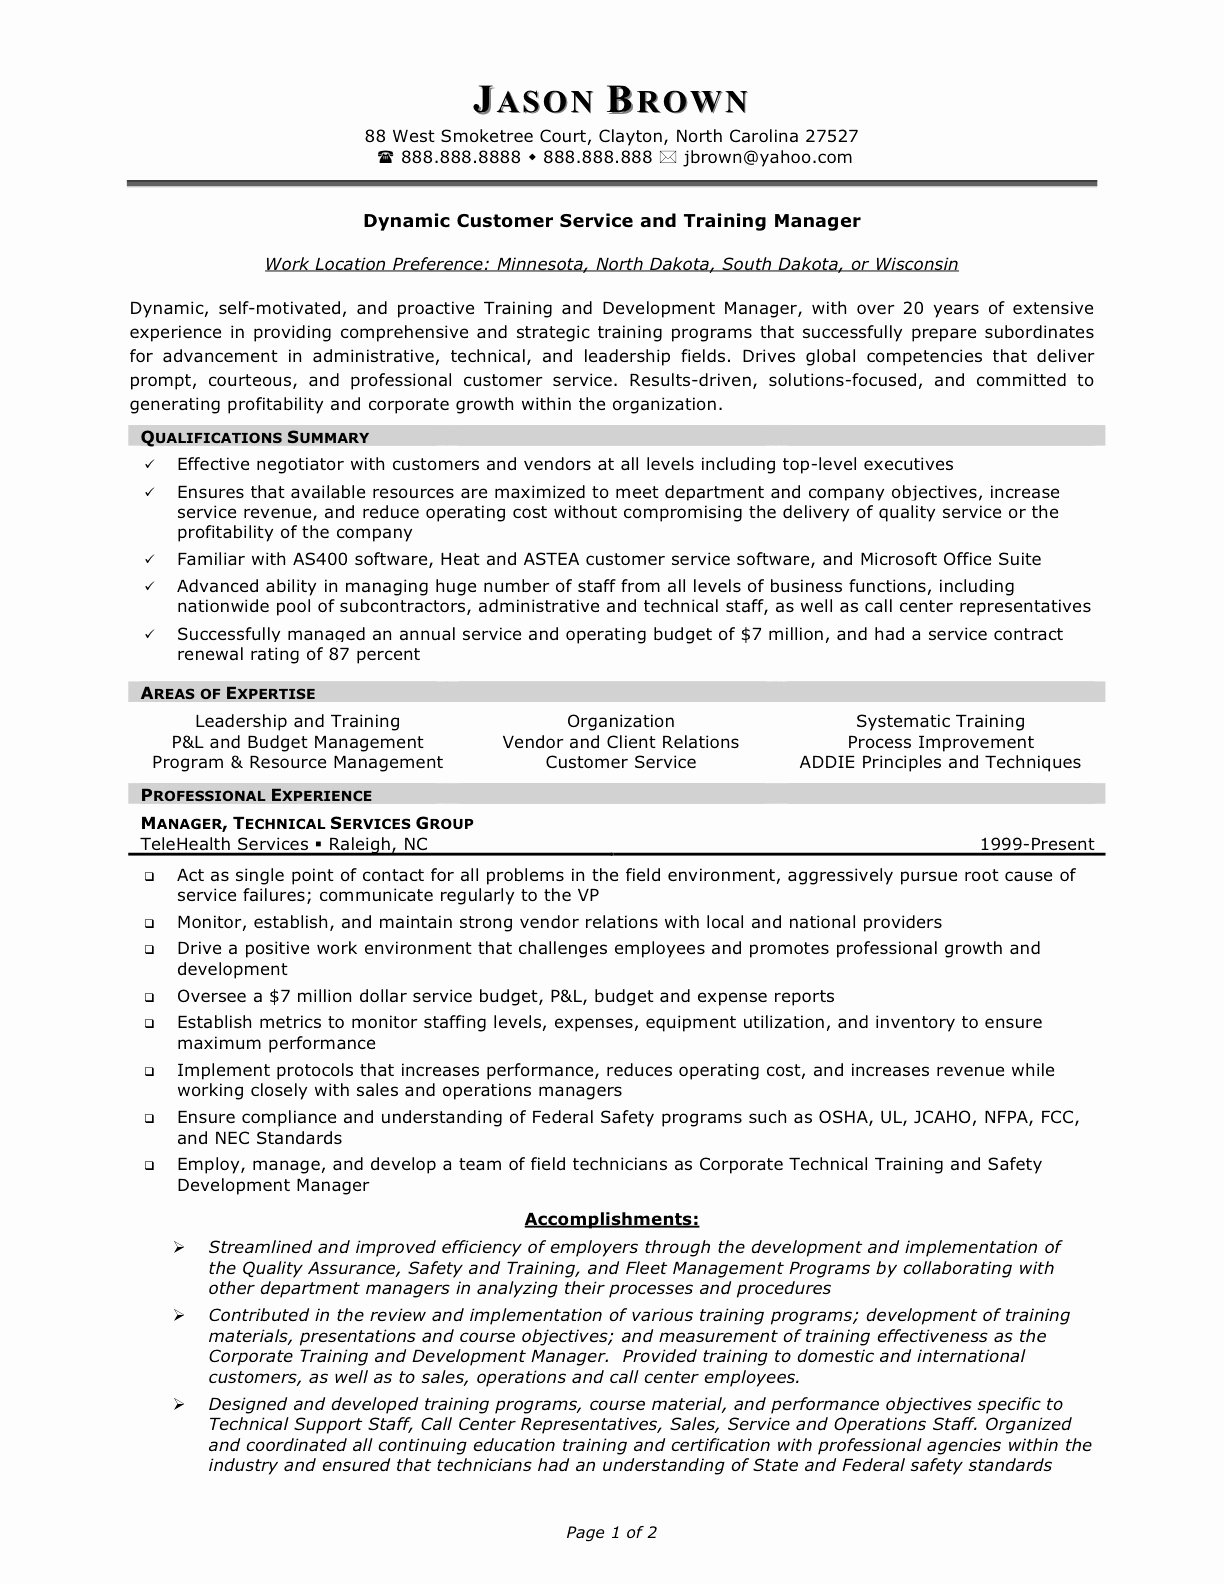 Resume for Customer Service Call Center Job Description